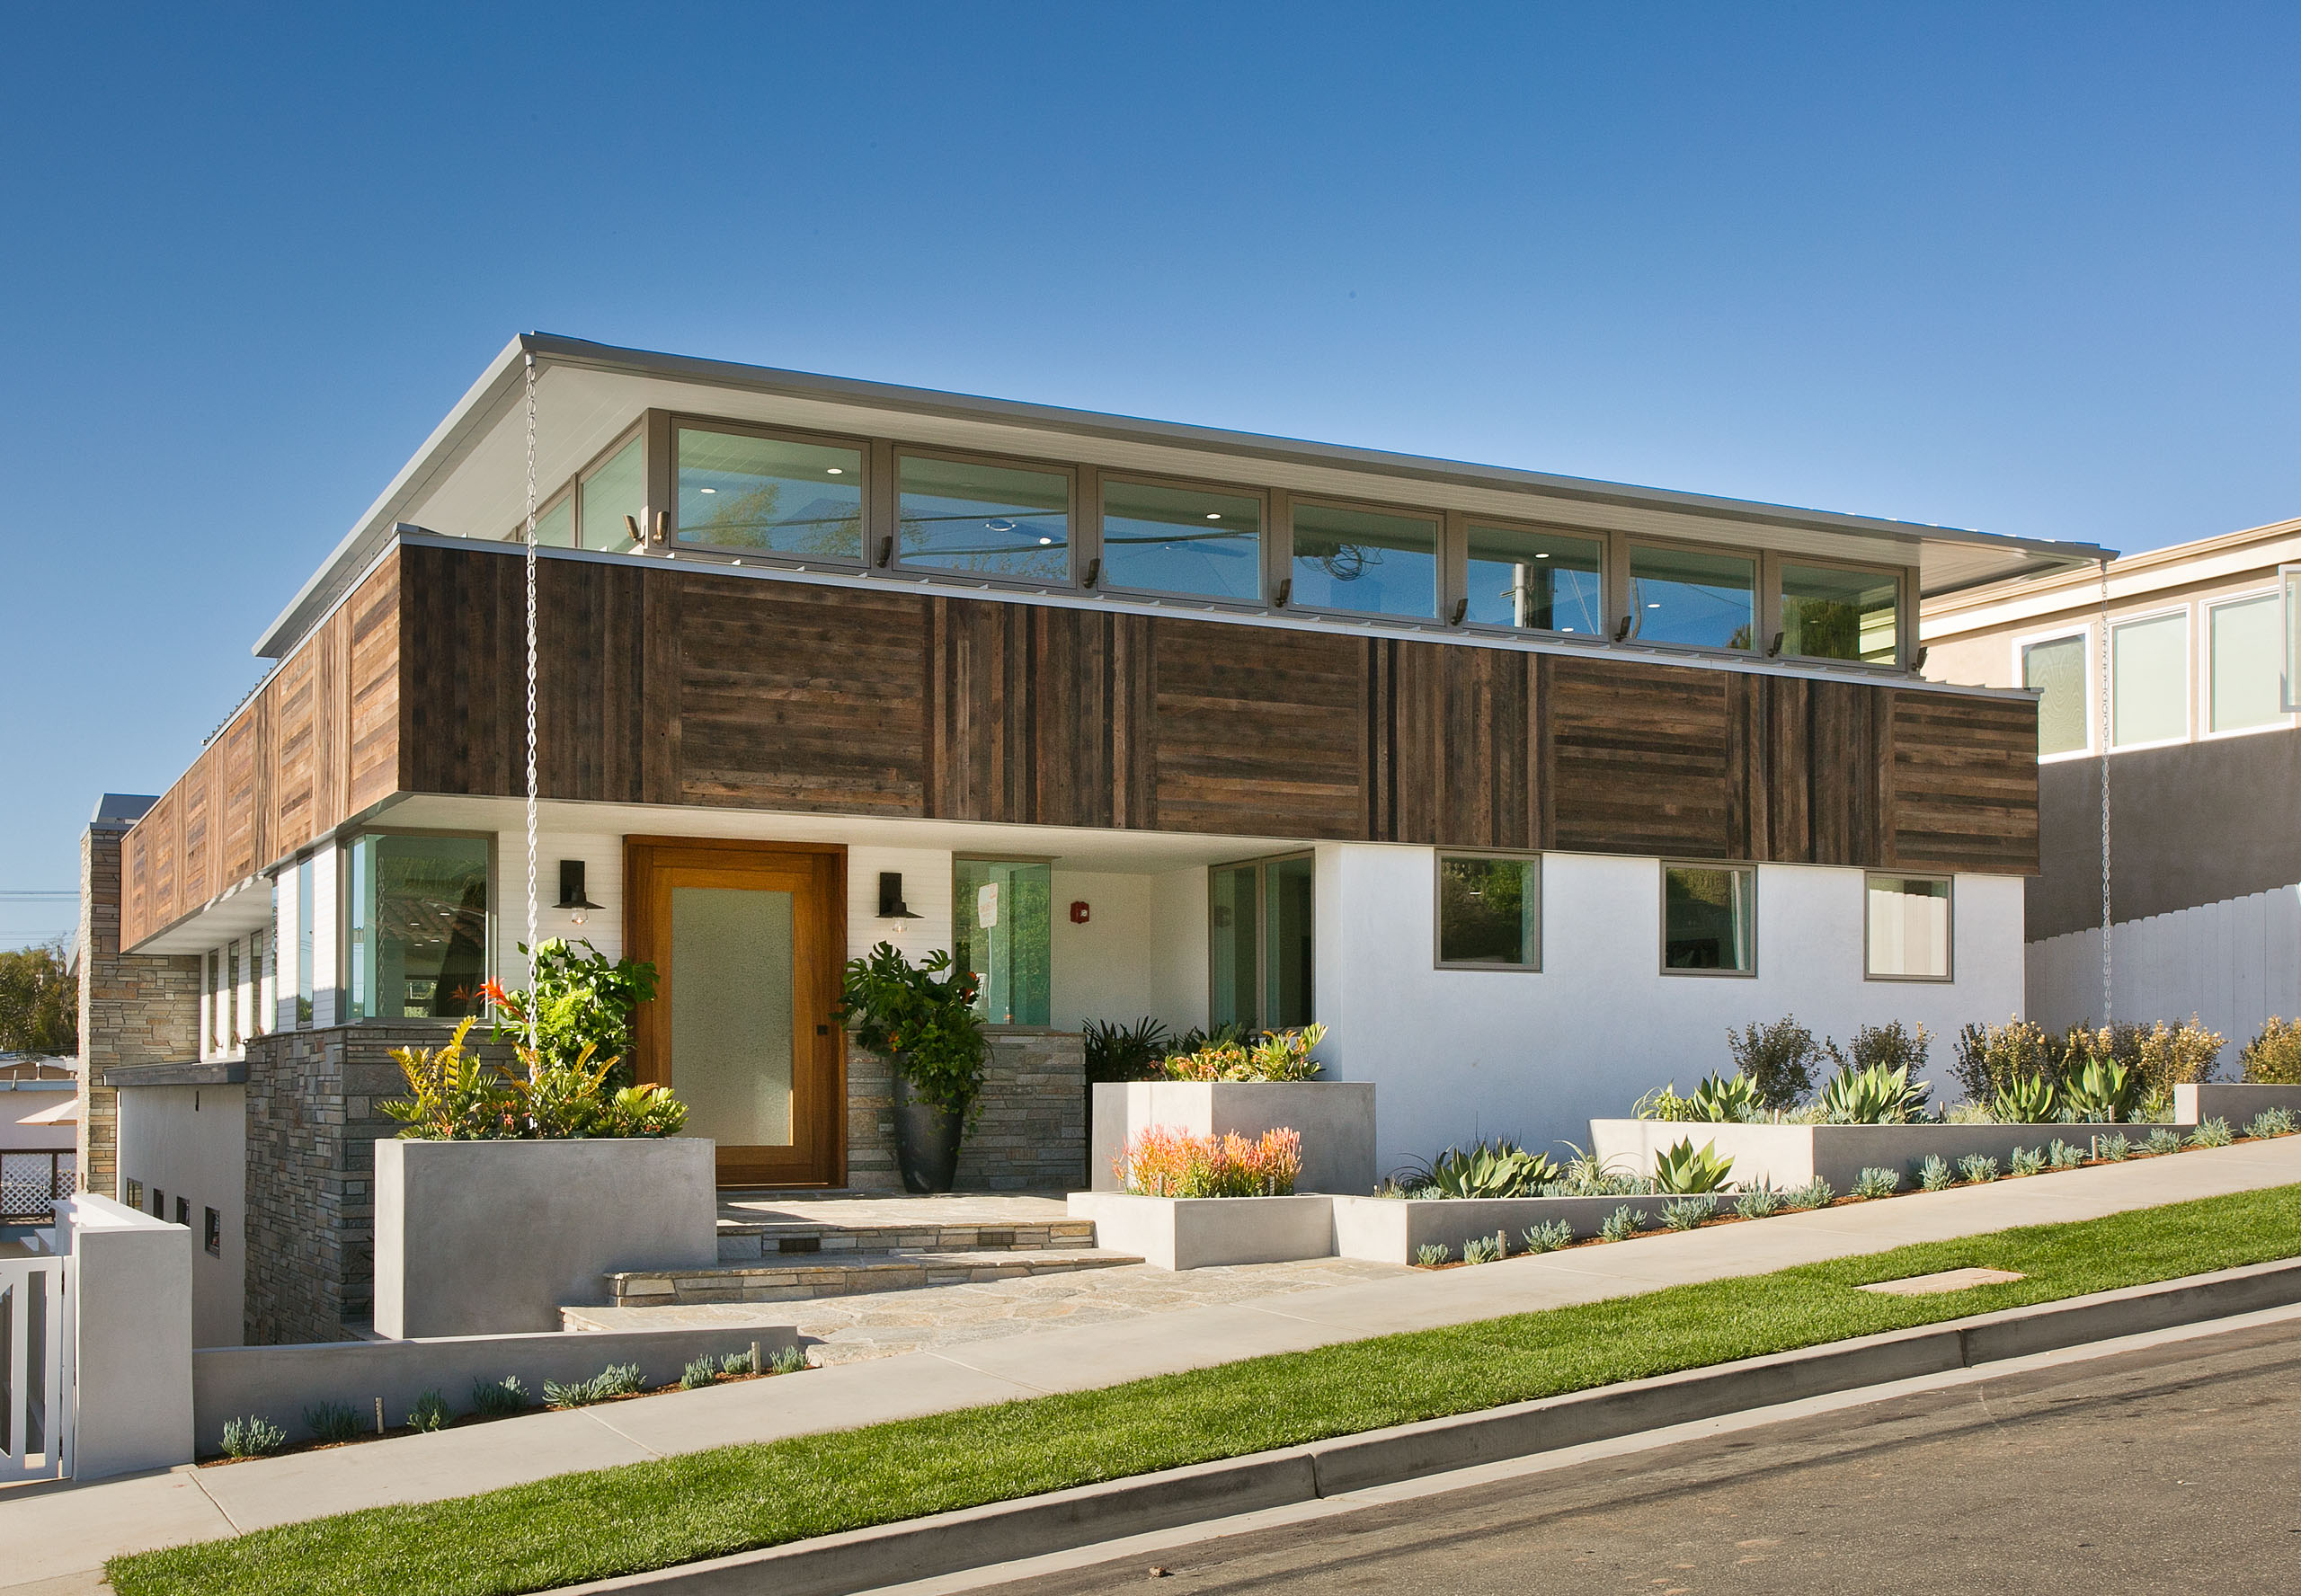 659-30th-HermosaBeach-front_DIGS Market Influencer: Ed Kaminsky